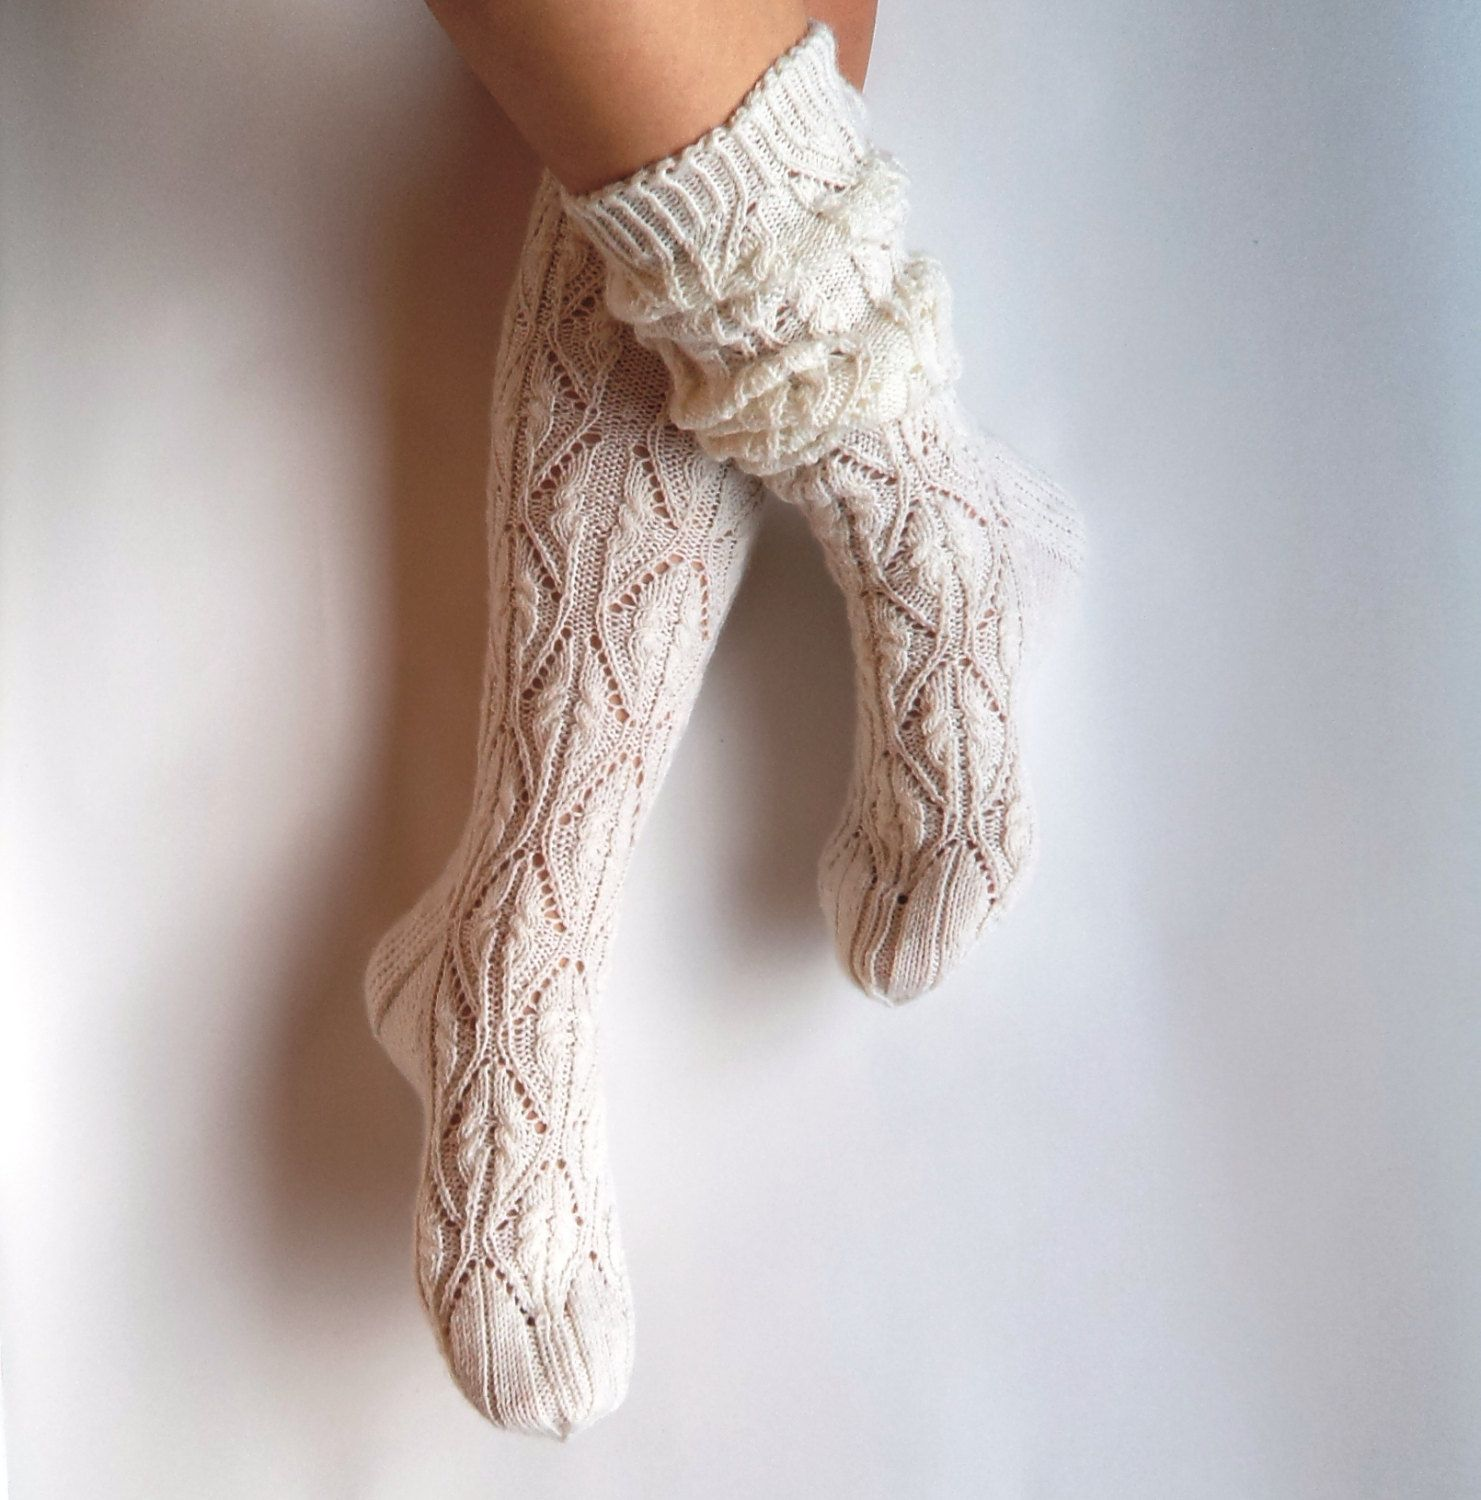 Rustic white winter boots google search wedding pinterest rustic white winter boots google search bankloansurffo Choice Image